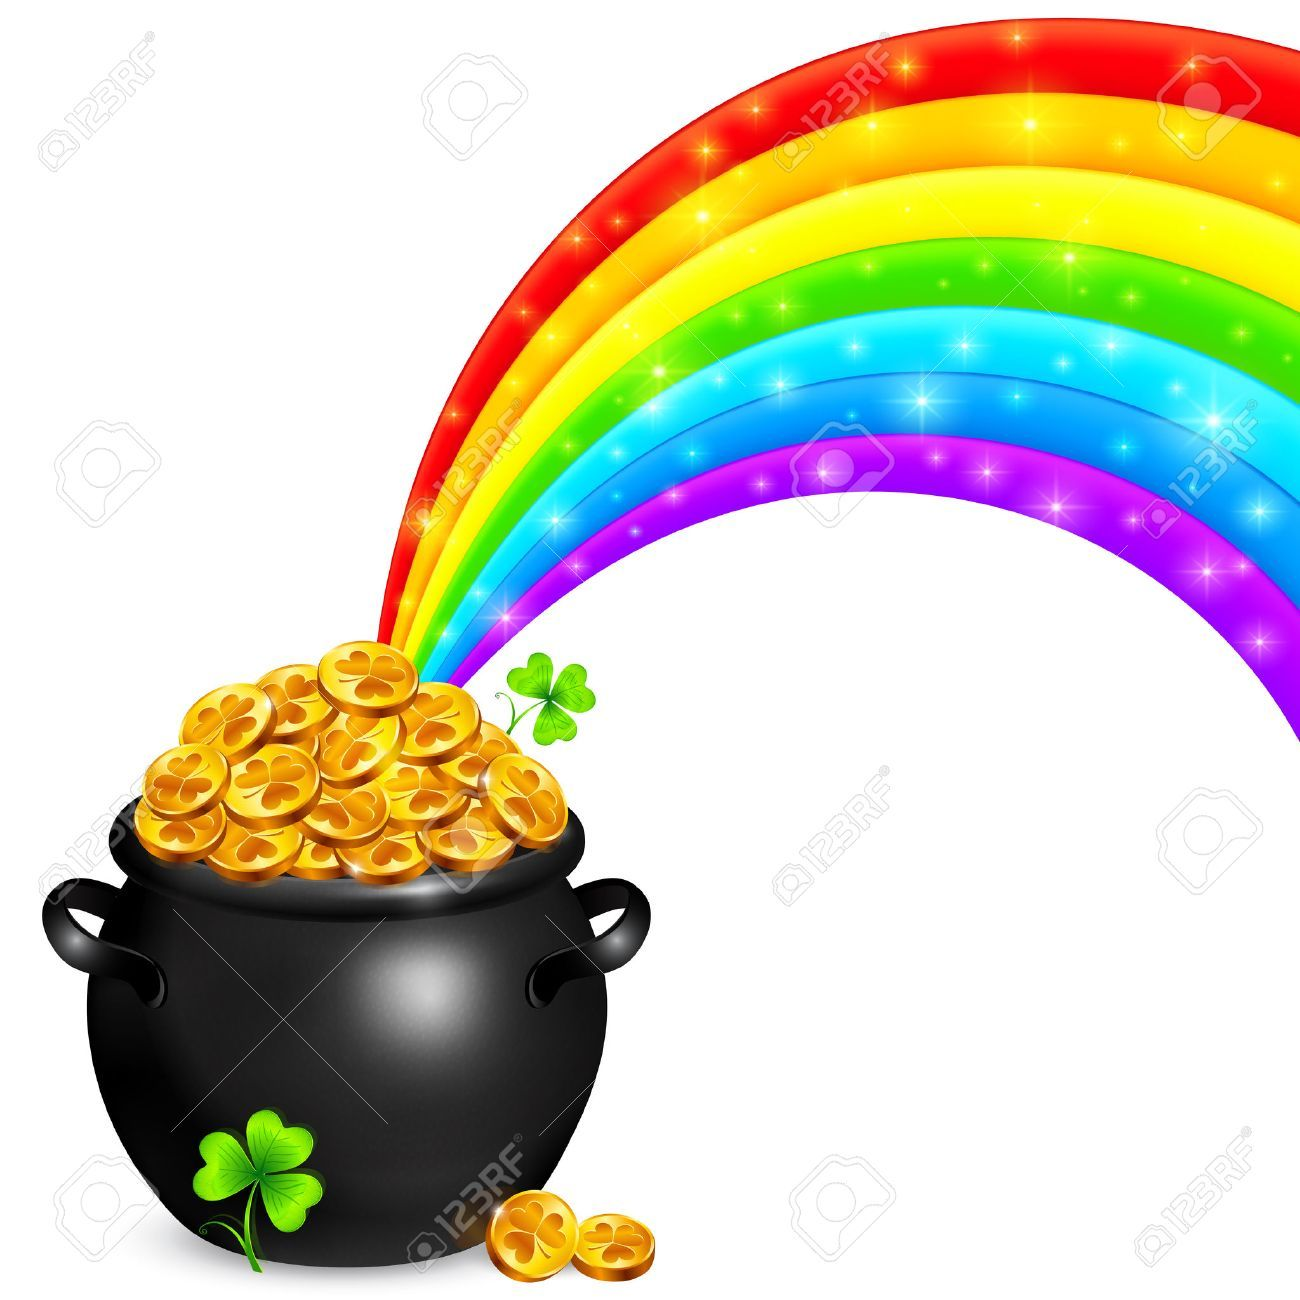 Rainbow with pot of gold clipart 2 » Clipart Portal.